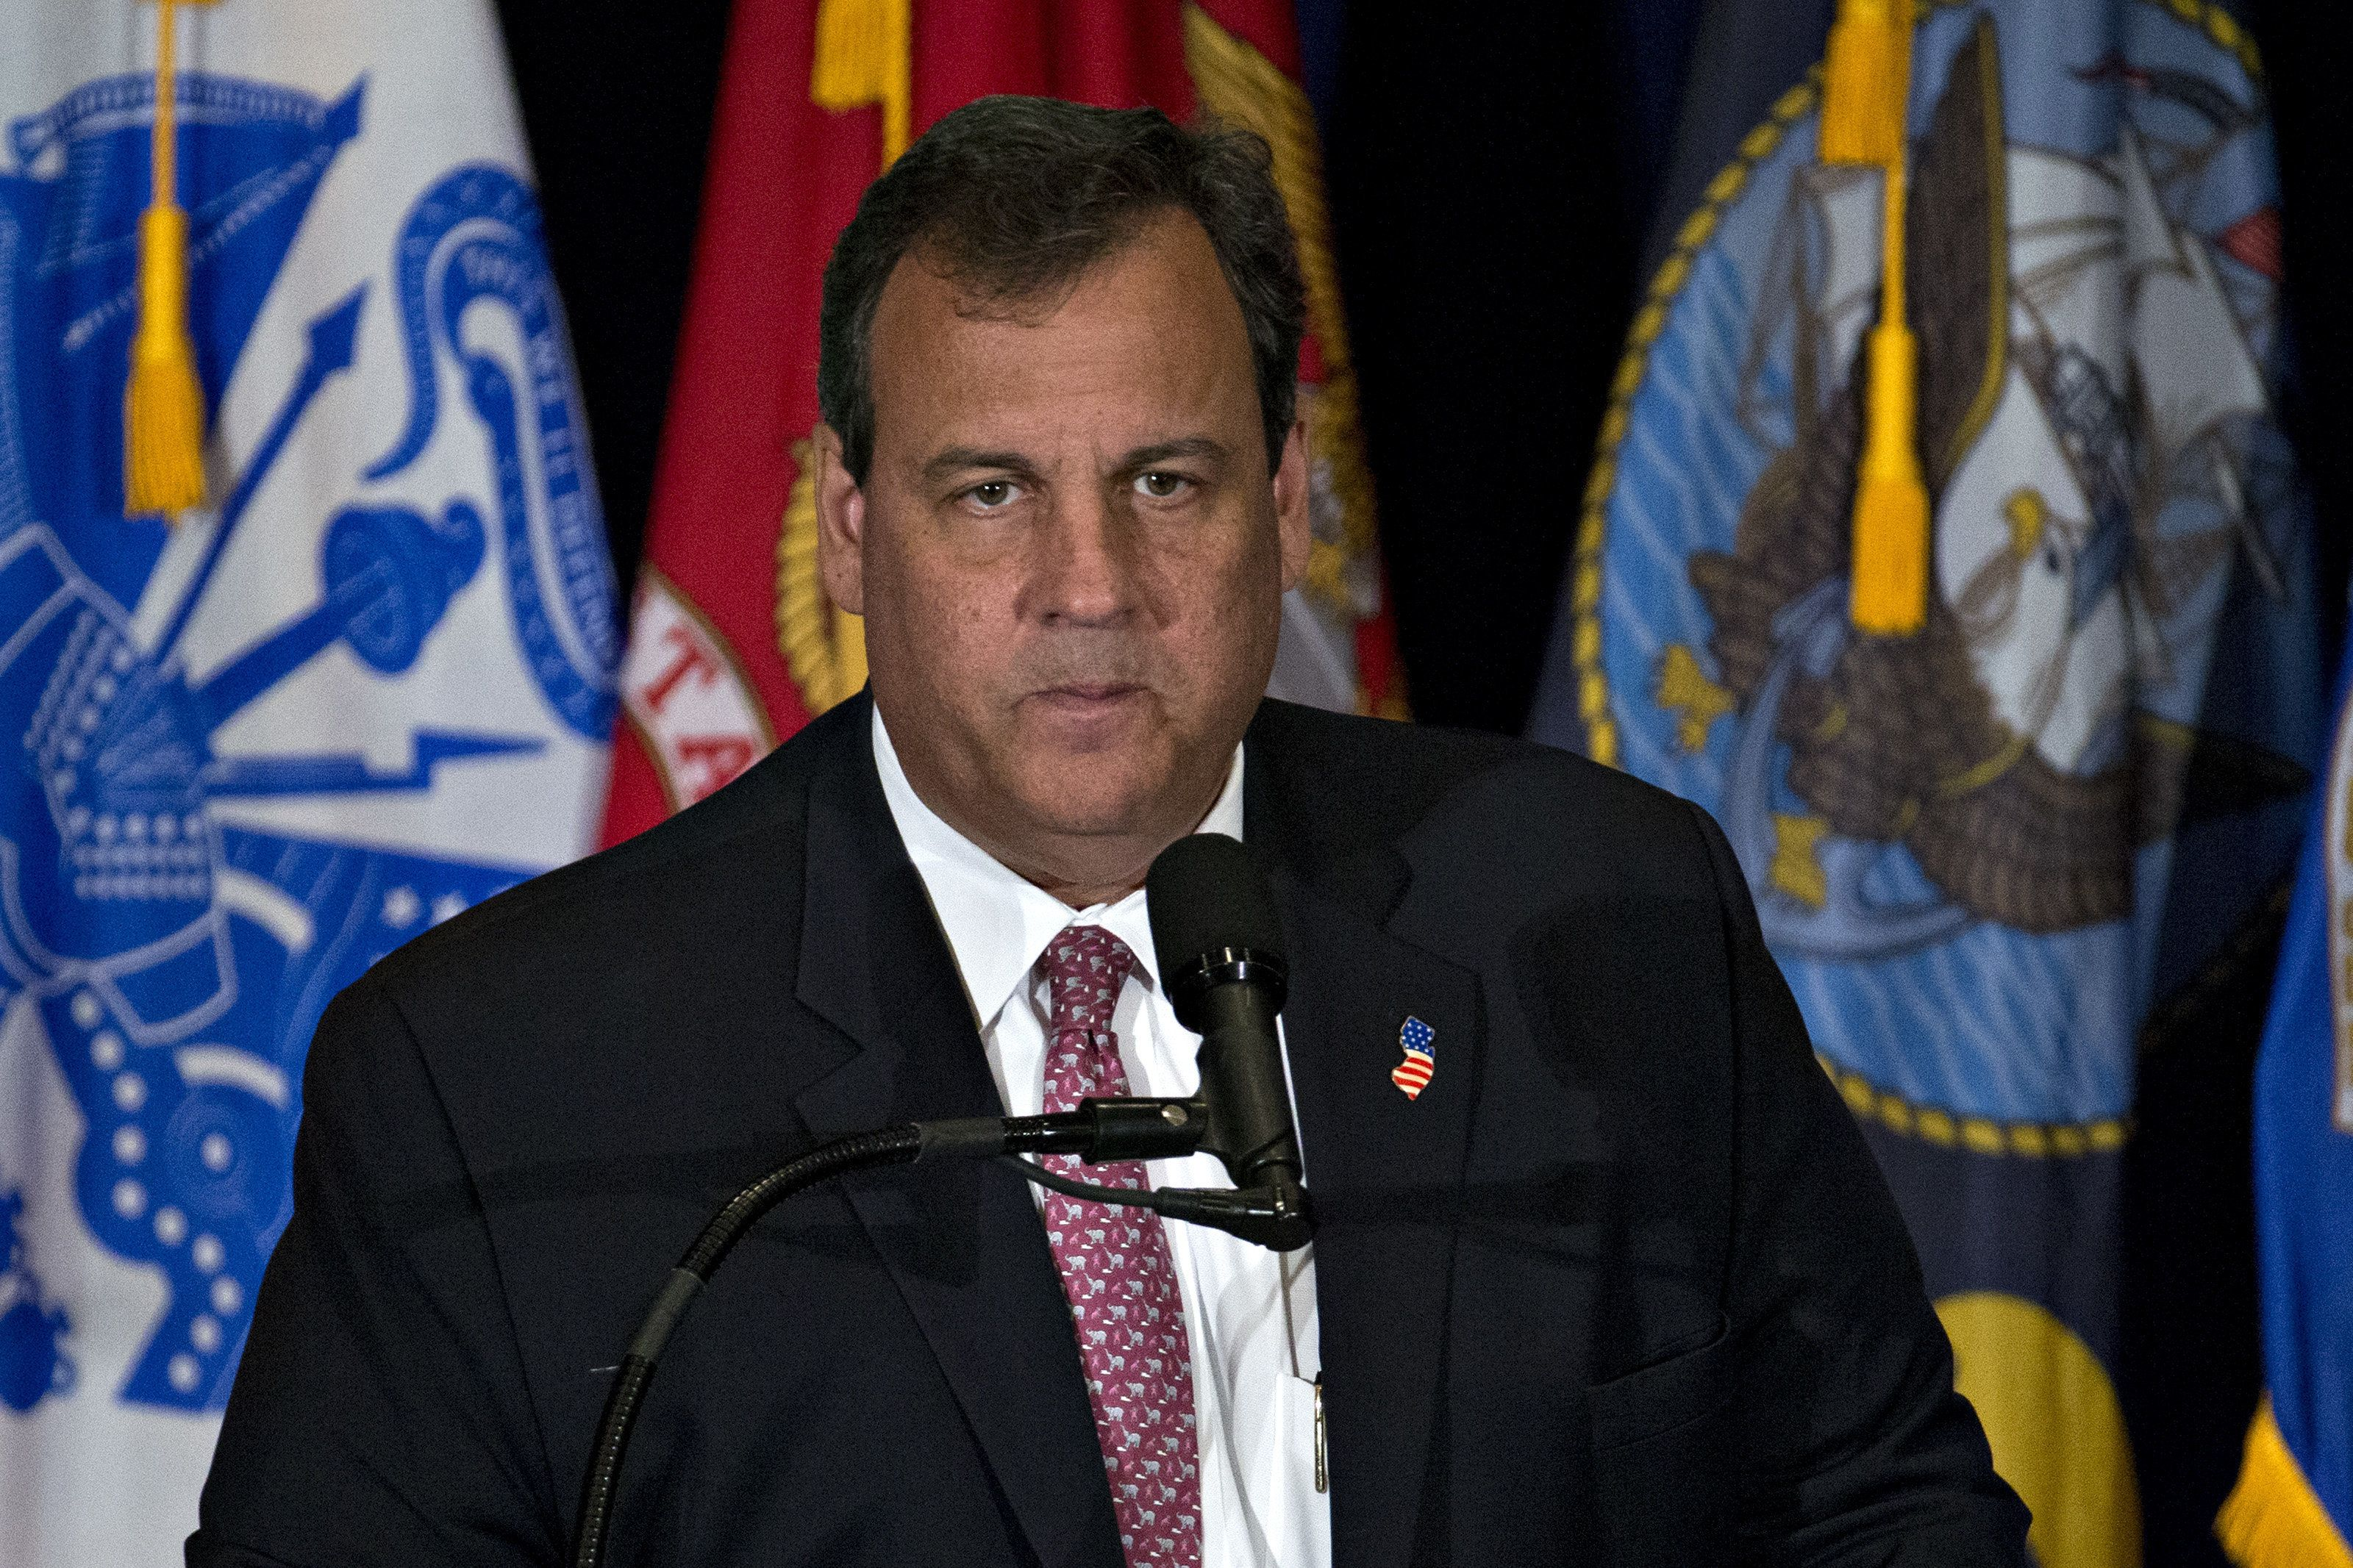 Chris Christie, governor of New Jersey, pauses while speaking during a veterans reform campaign event with Donald Trump, presumptive 2016 Republican presidential nominee, not pictured, in Virginia Beach, Virginia, U.S., on Monday, July 11, 2016. Trump said he expects to choose his running mate for the GOP presidential ticket in the next three or four days and is leaning toward a political pick to balance out his outsider status, according to a Monday interview with the Washington Post. Photographer: Andrew Harrer/Bloomberg via Getty Images